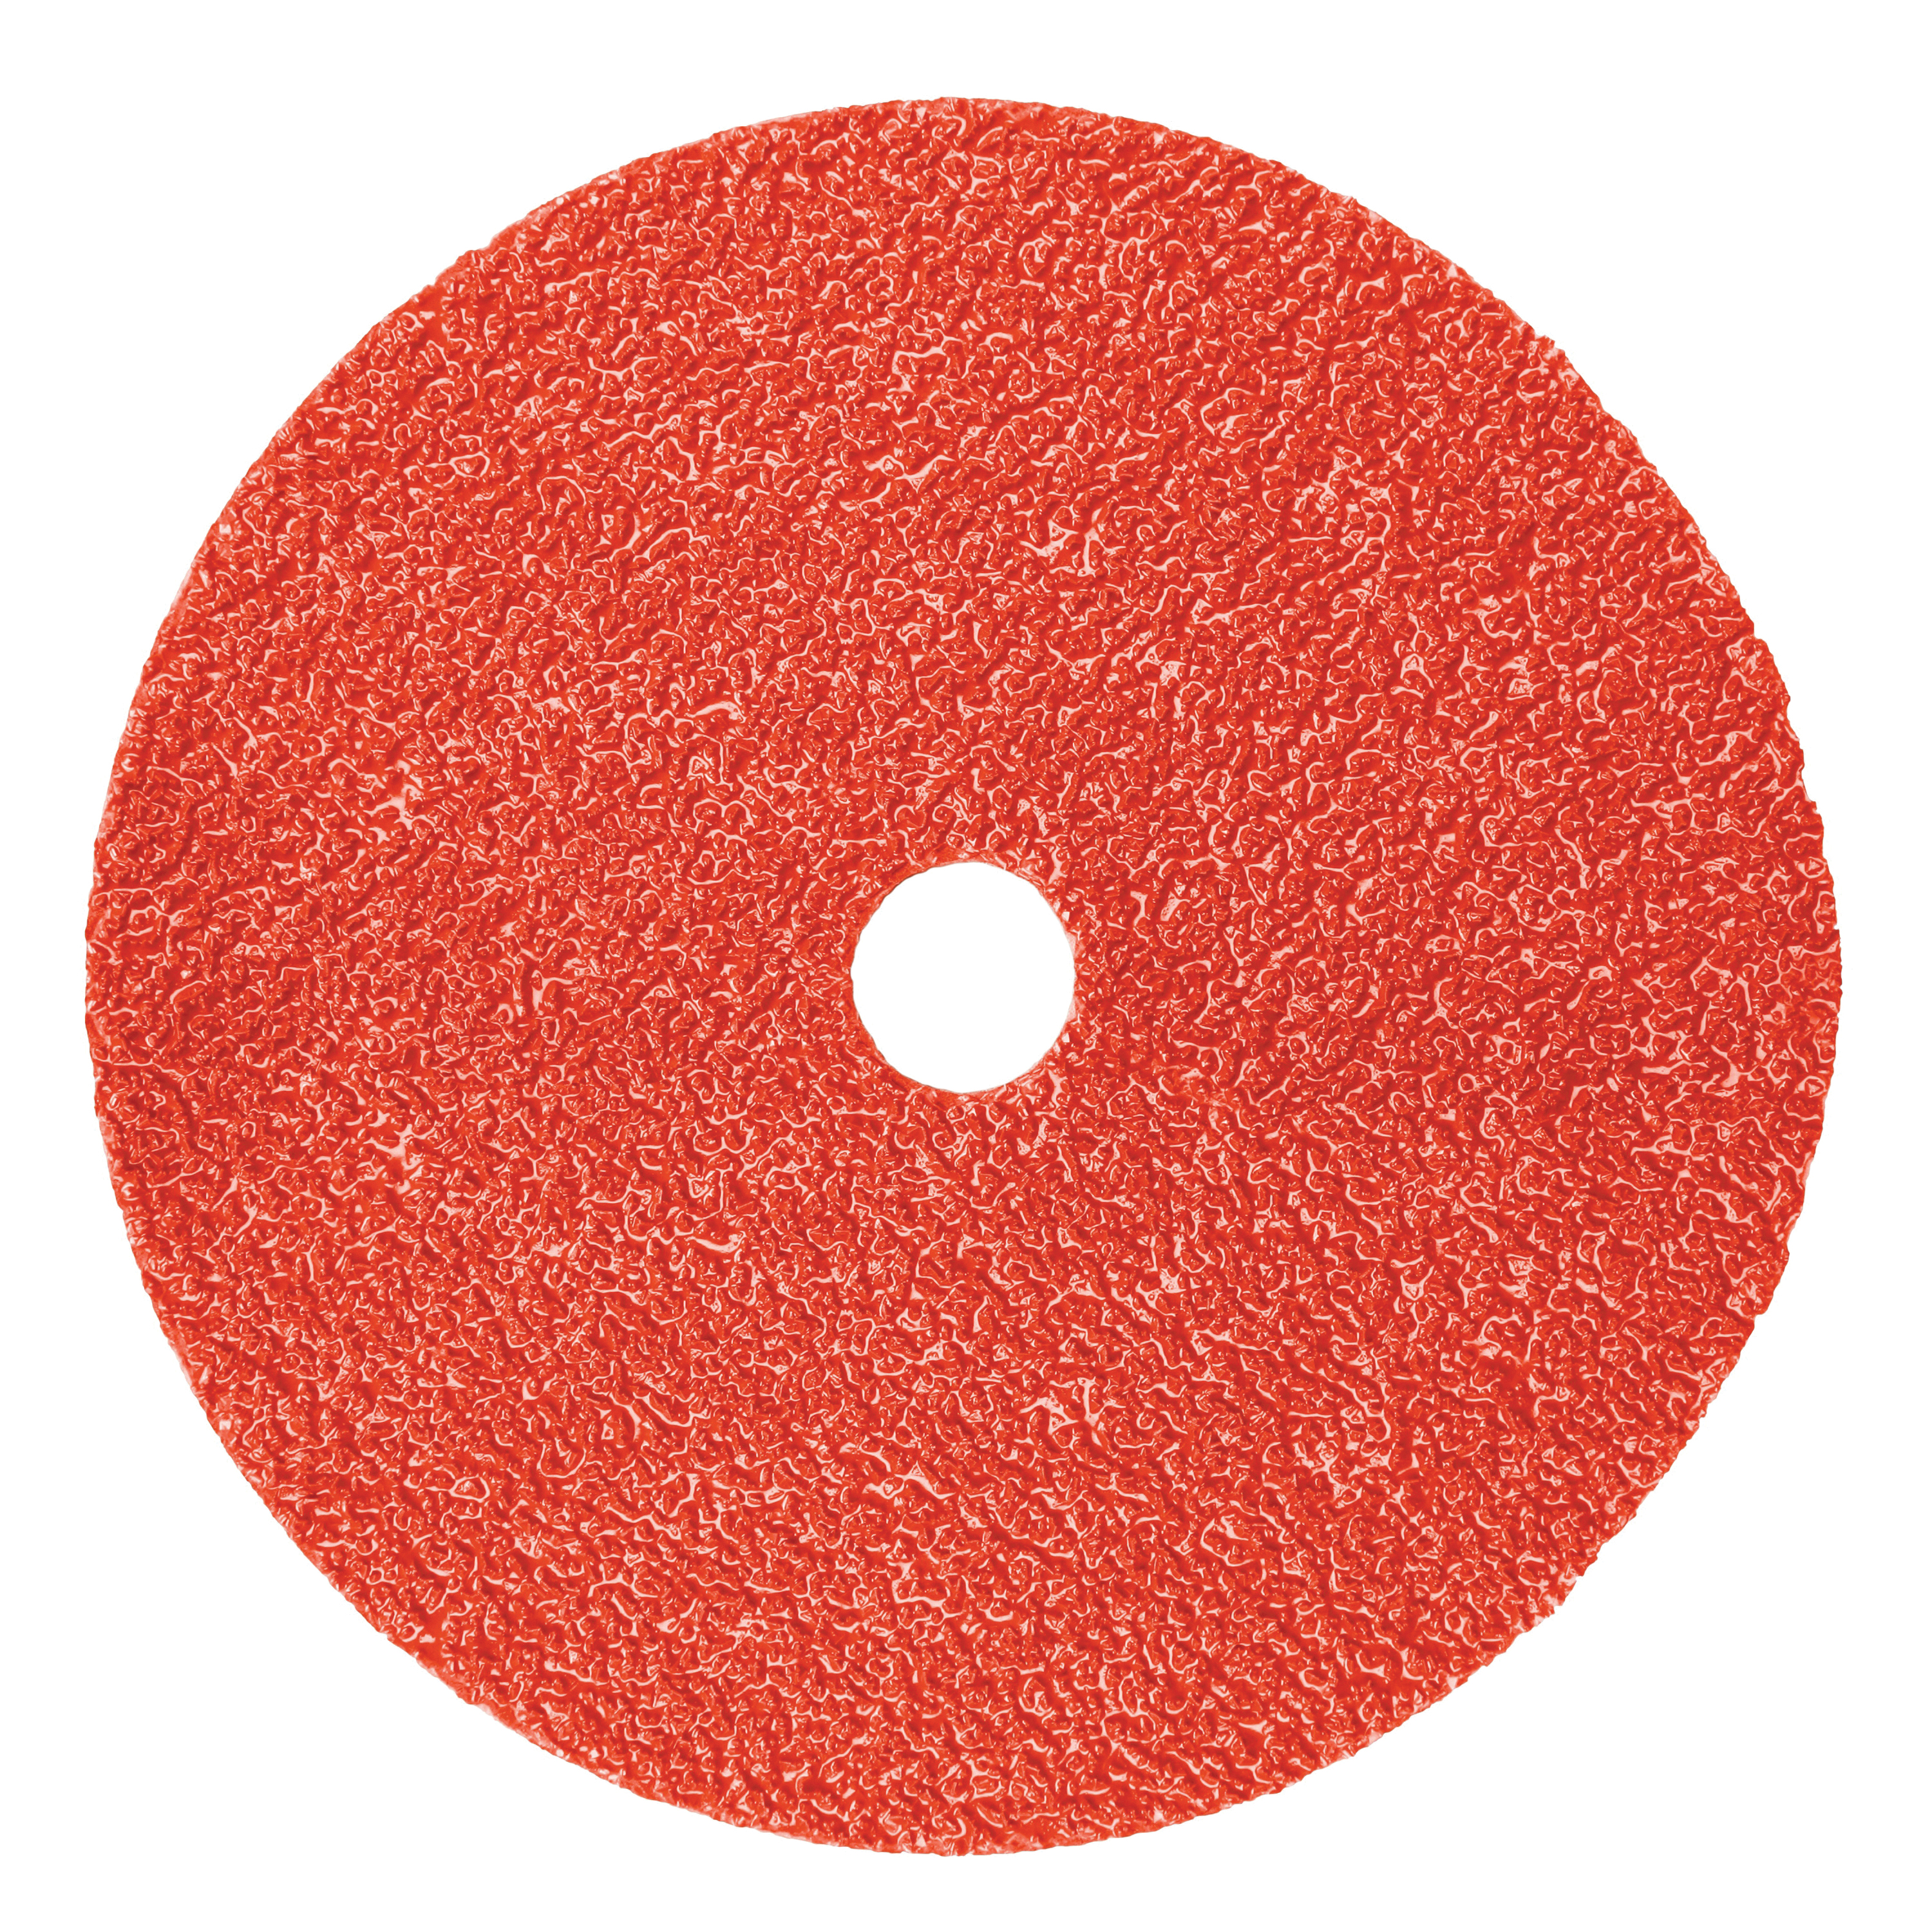 3M™ 076308-89627 Close Coated Closed Coated Abrasive Disc, 4-1/2 in Dia Disc, 7/8 in Center Hole, 36+ Grit, Ceramic Abrasive, Arbor Attachment